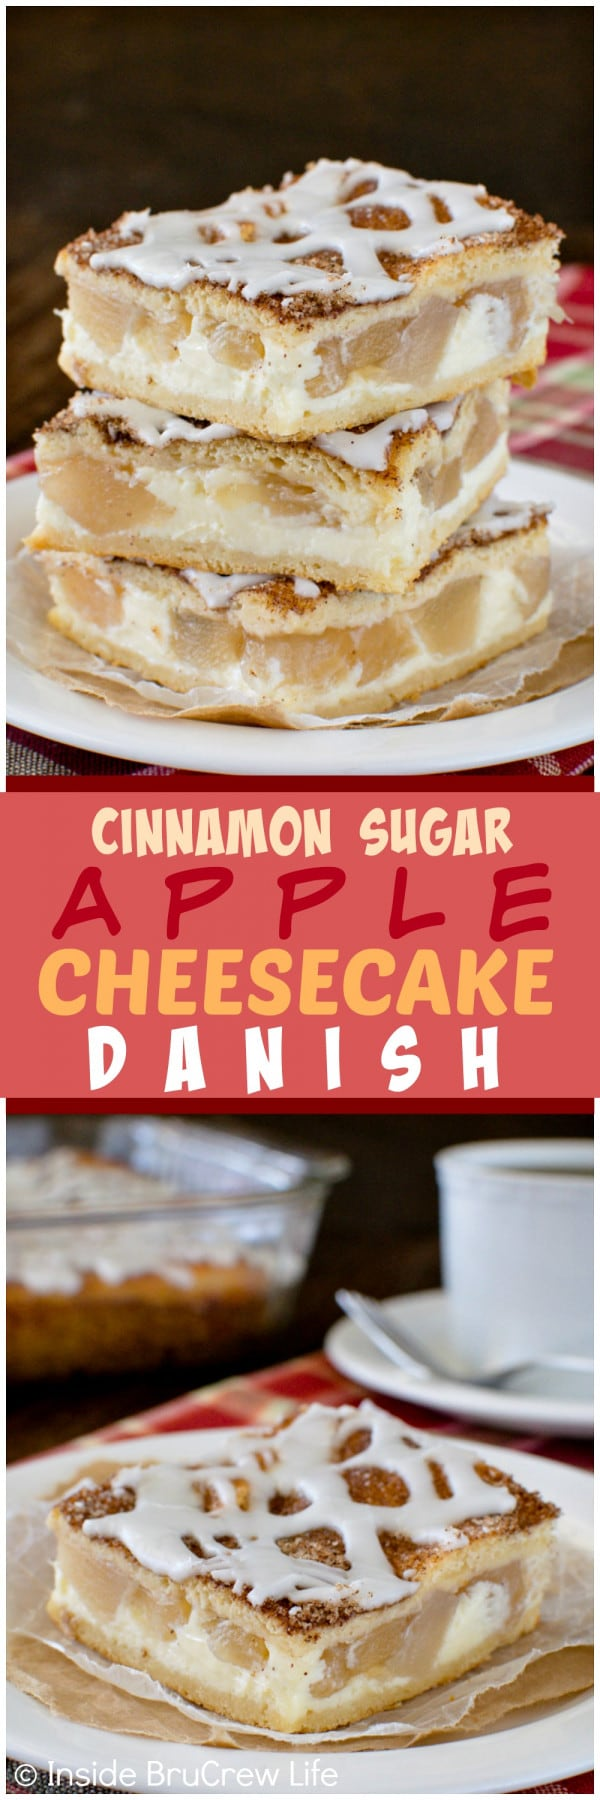 Cinnamon Sugar Apple Cheesecake Danish - the sugar coating gives a sweet crunch to the creamy cheesecake & apple chunks. Great breakfast or dessert recipe!